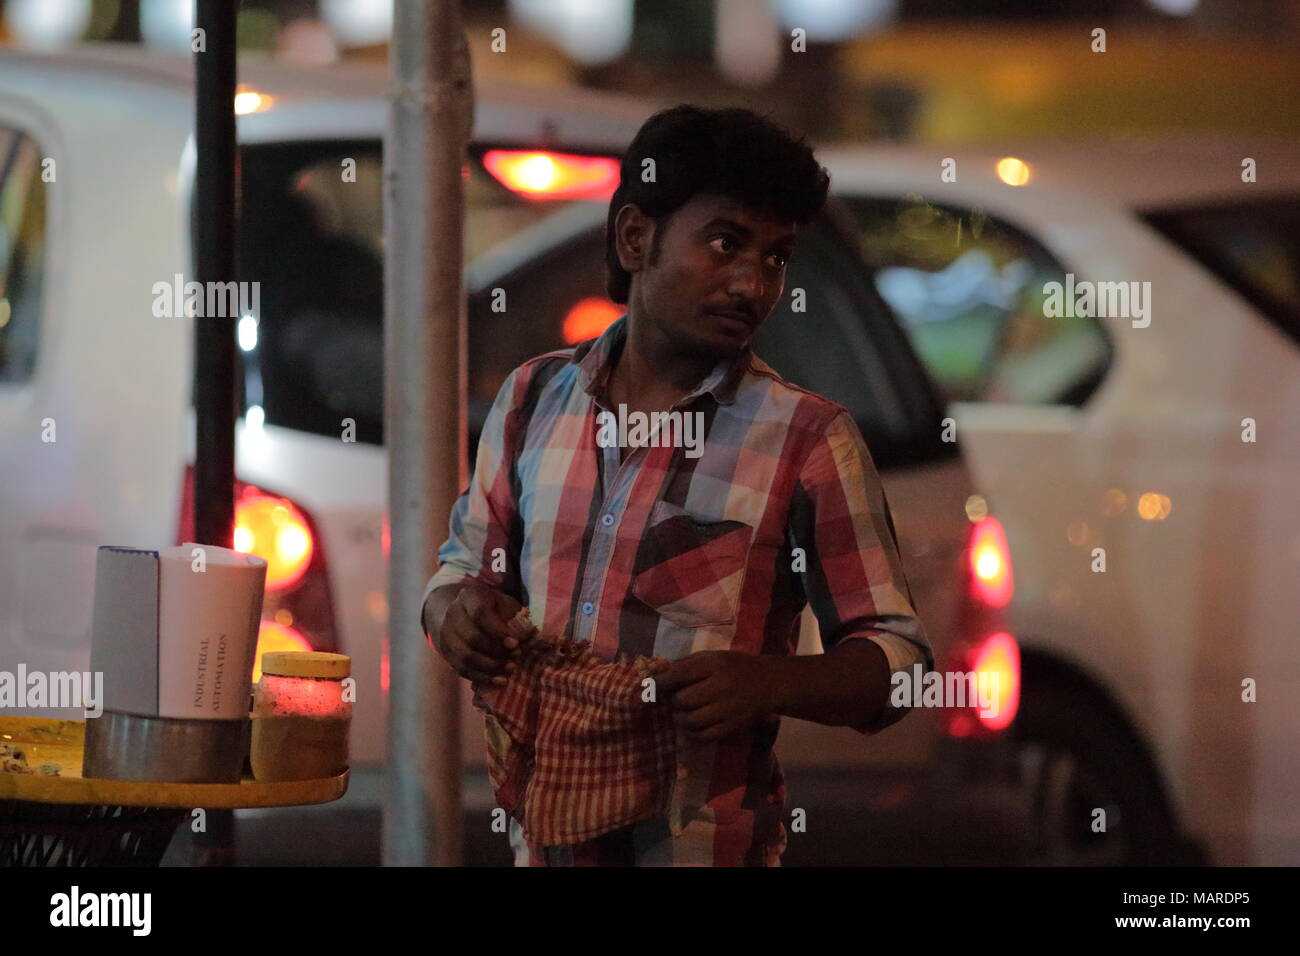 Bangalore, India - October 16, 2016: An unknown street side vendor, stands looking for customers this evening at MG Road, Bangalore. - Stock Image